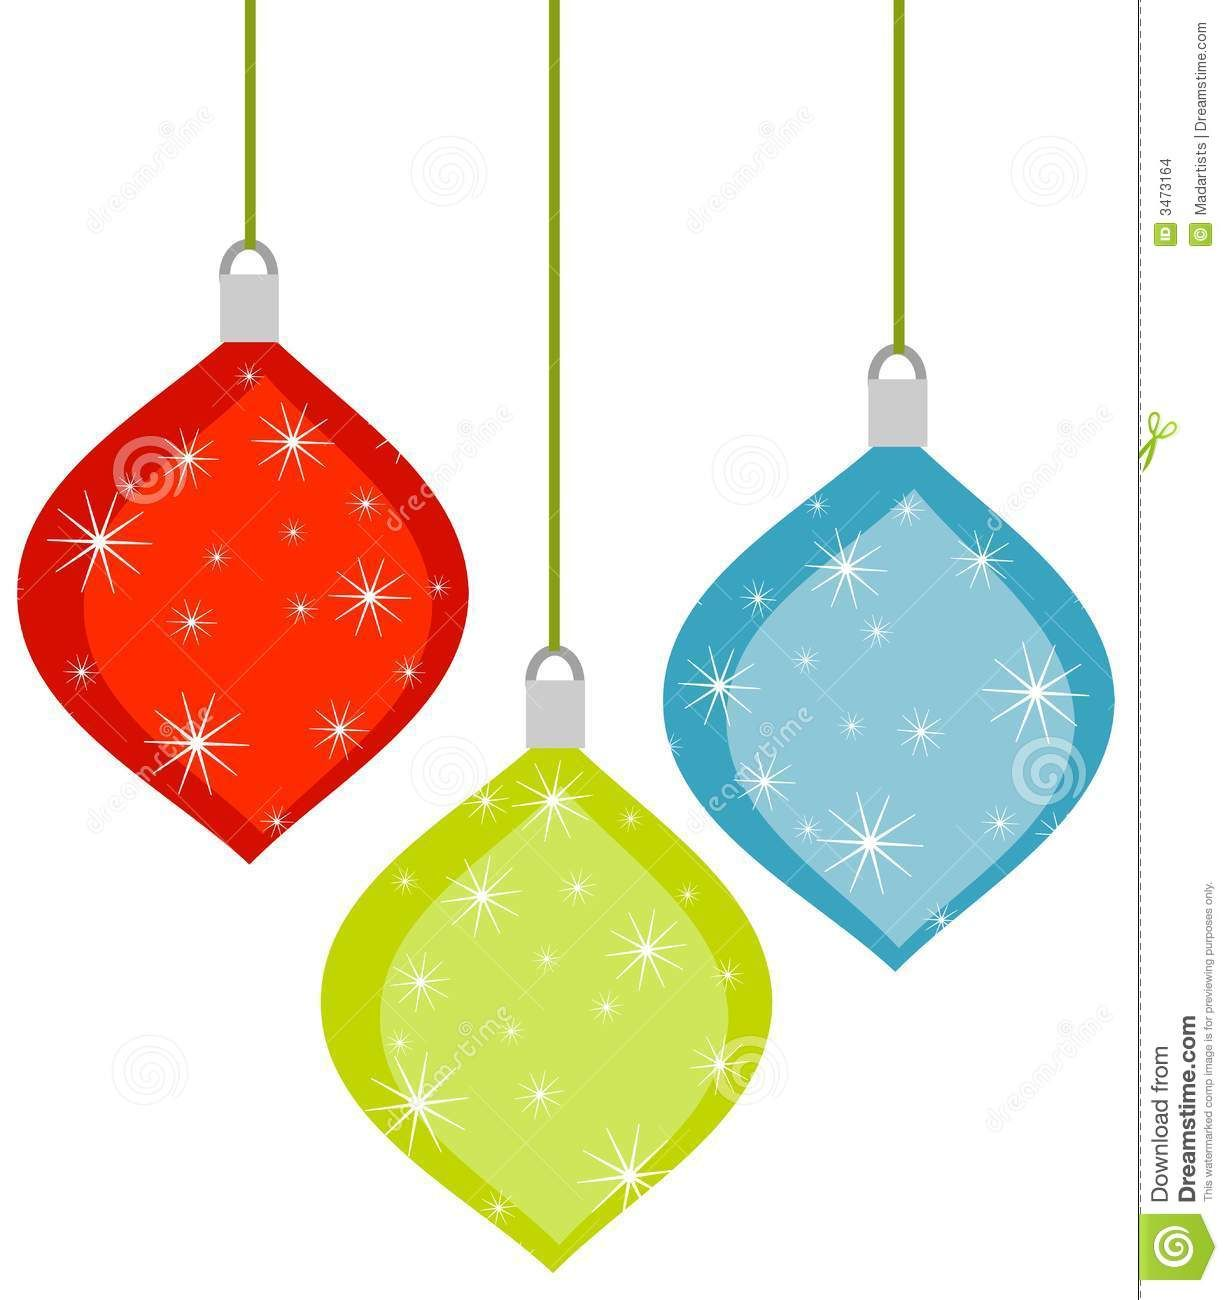 Christmas Ornament  Crafthubs  Crafty  Pinterest  Poster ideas